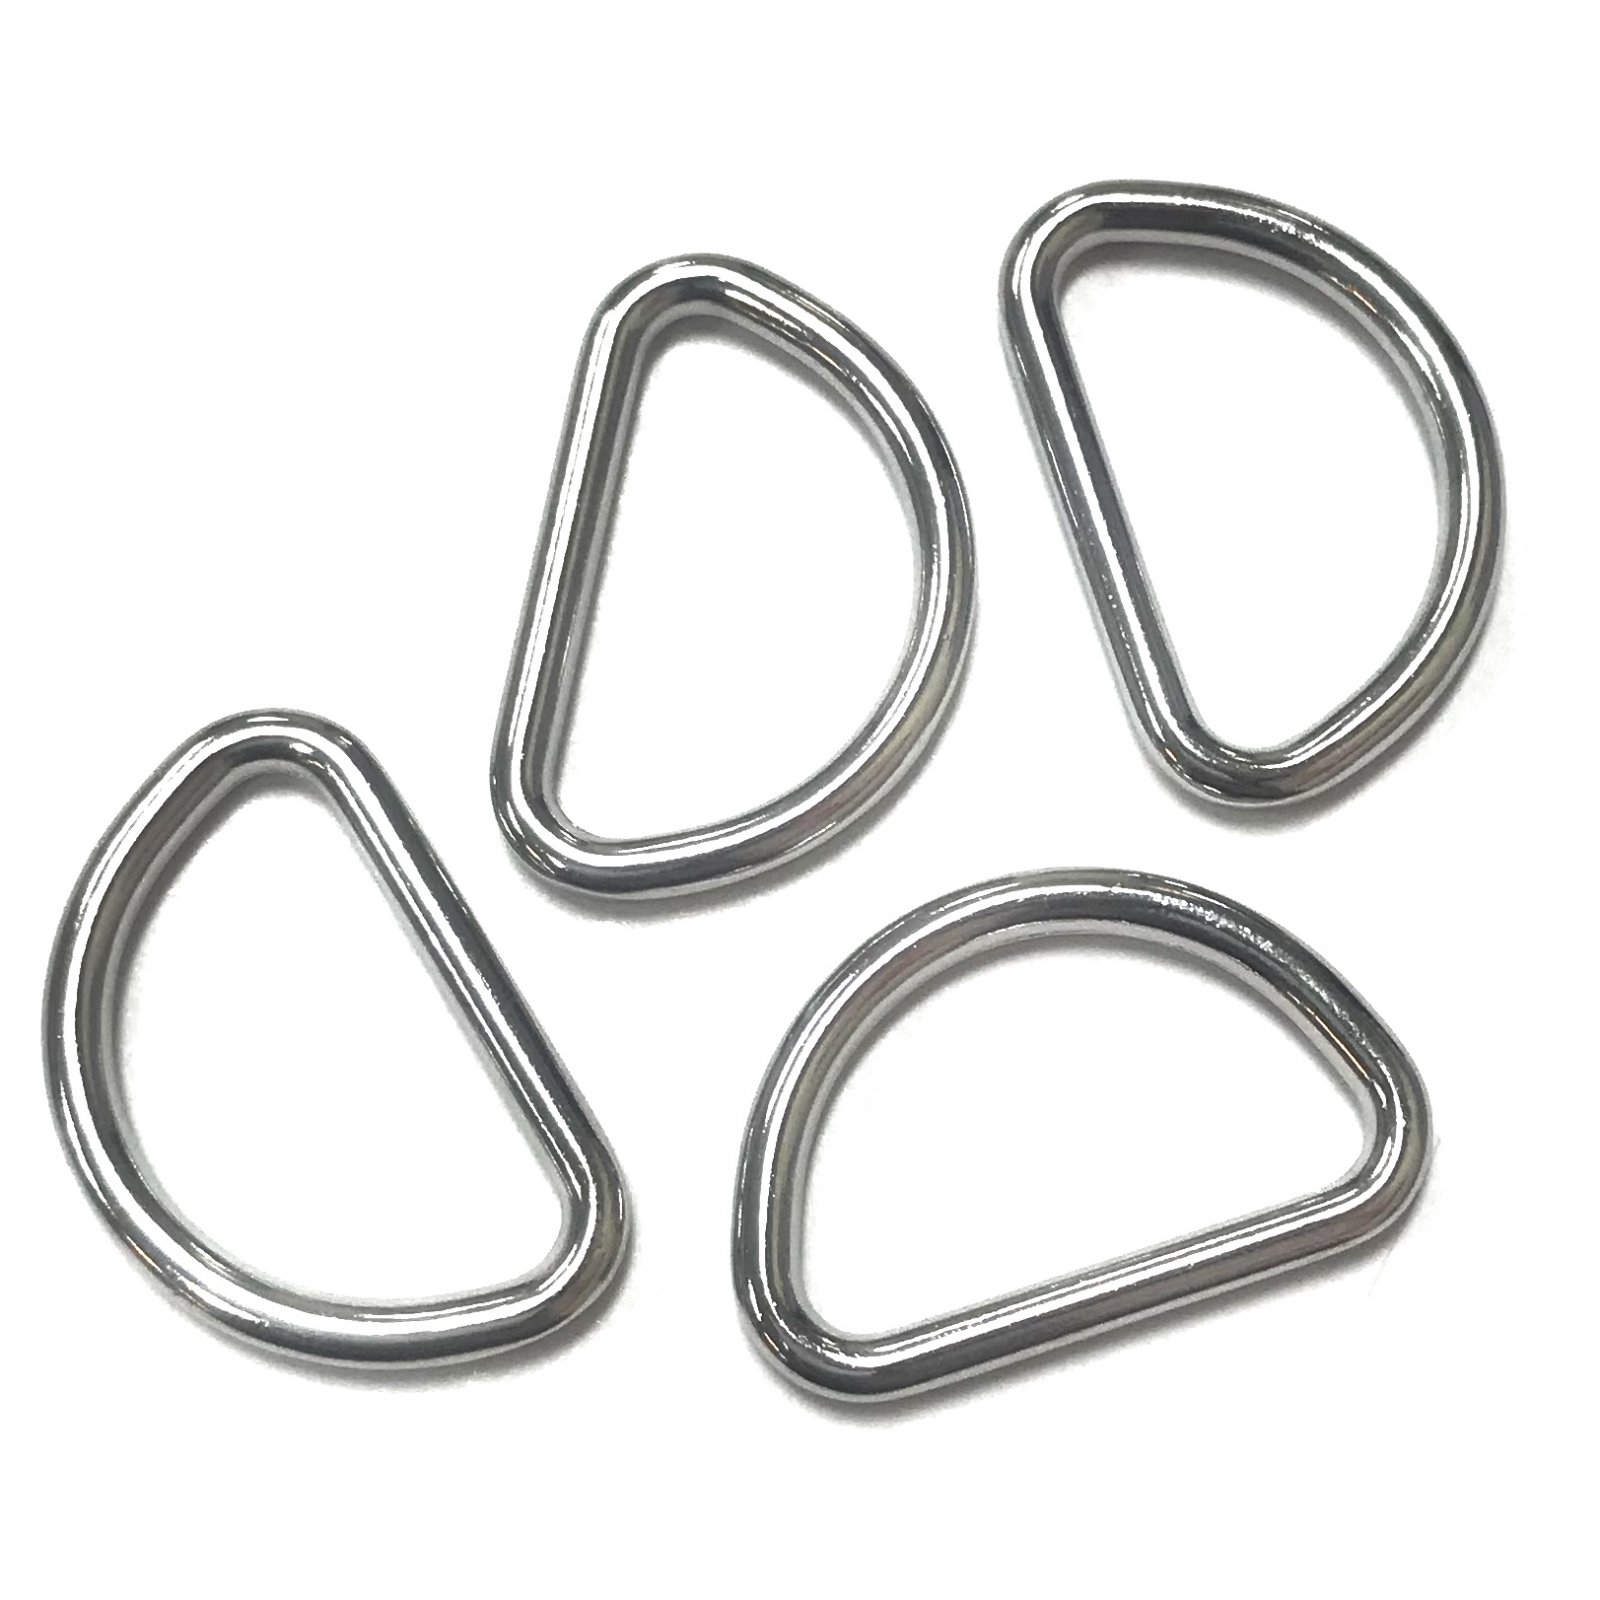 D Rings Set of 4 - 1